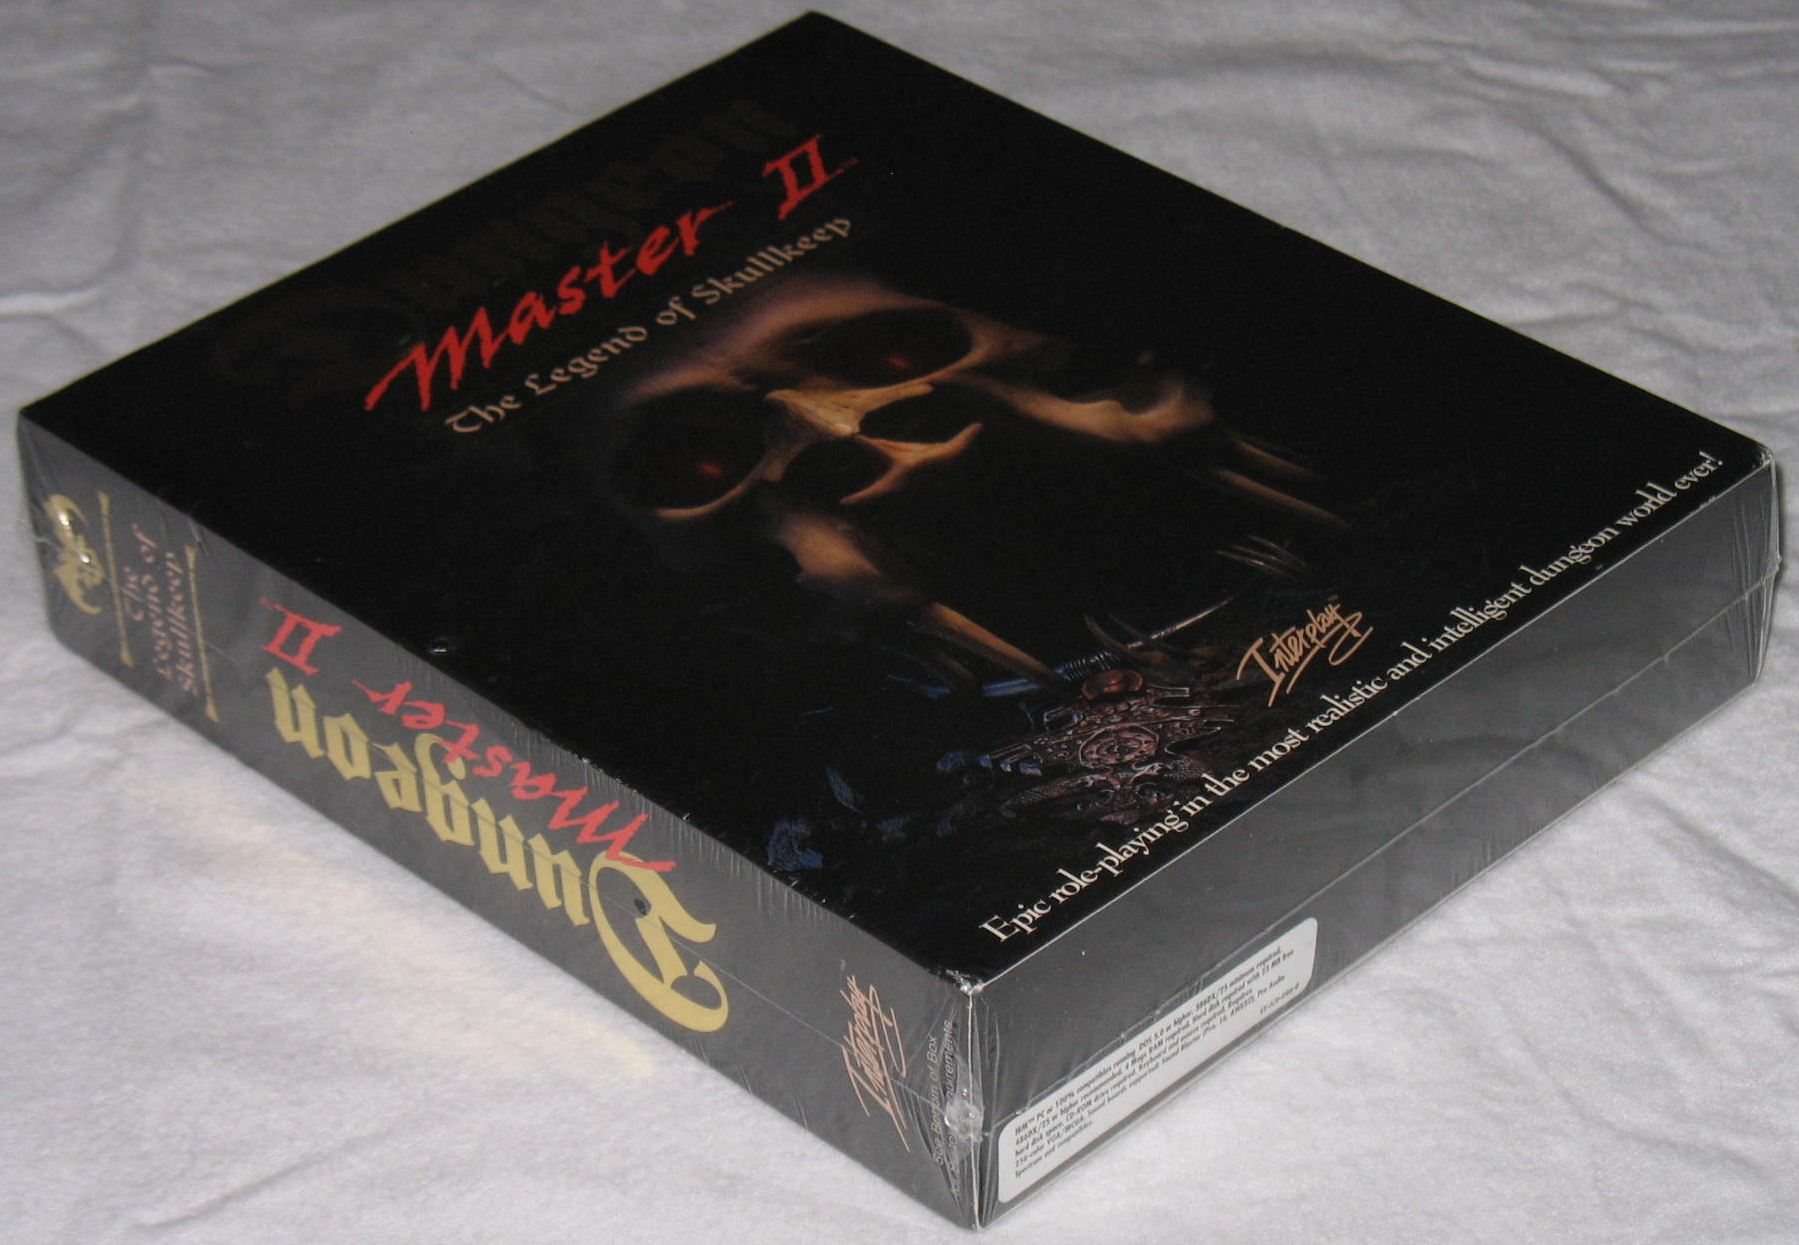 Game - Dungeon Master II - US - PC - Big Box - Box - Front Left Bottom - Photo